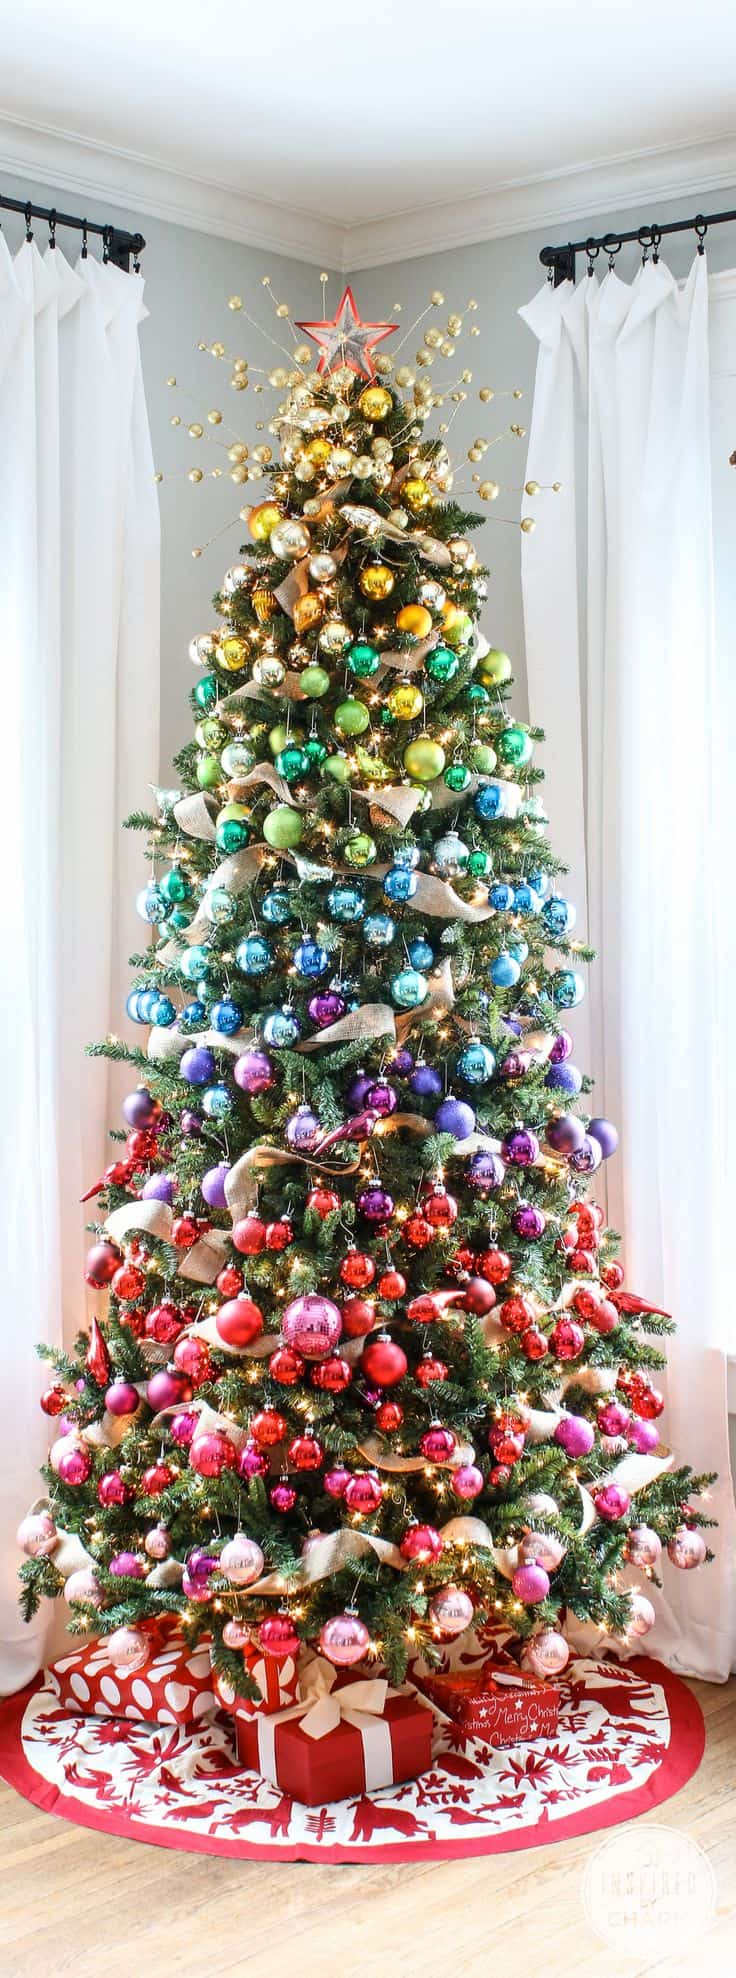 Delicieux Christmas Tree Ideas (6)